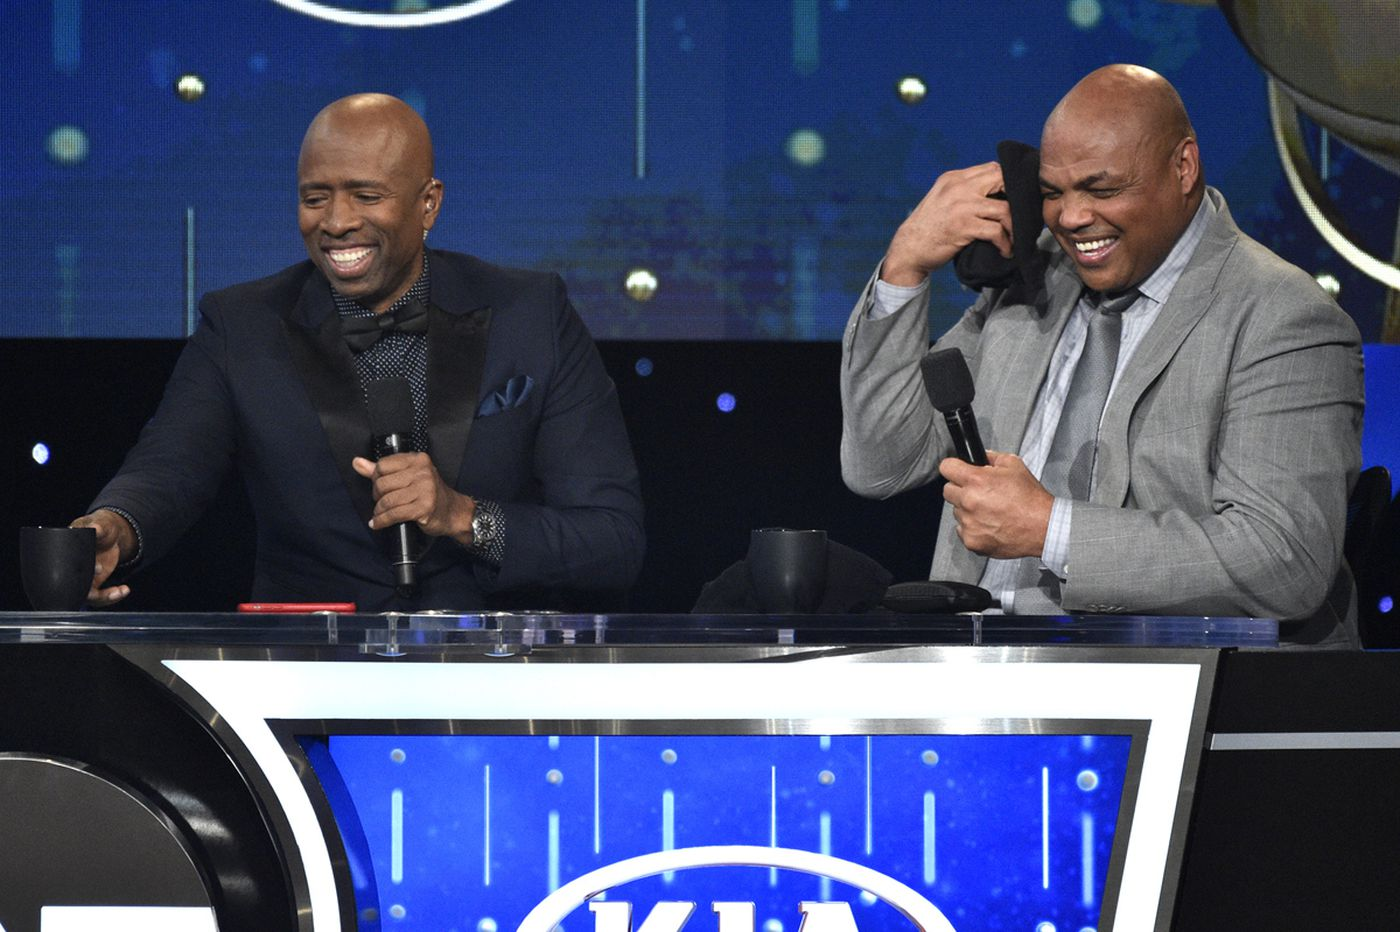 Charles Barkley, other TNT hosts open up about CNN's Jeff Zucker taking over: 'It's been a very difficult thing'